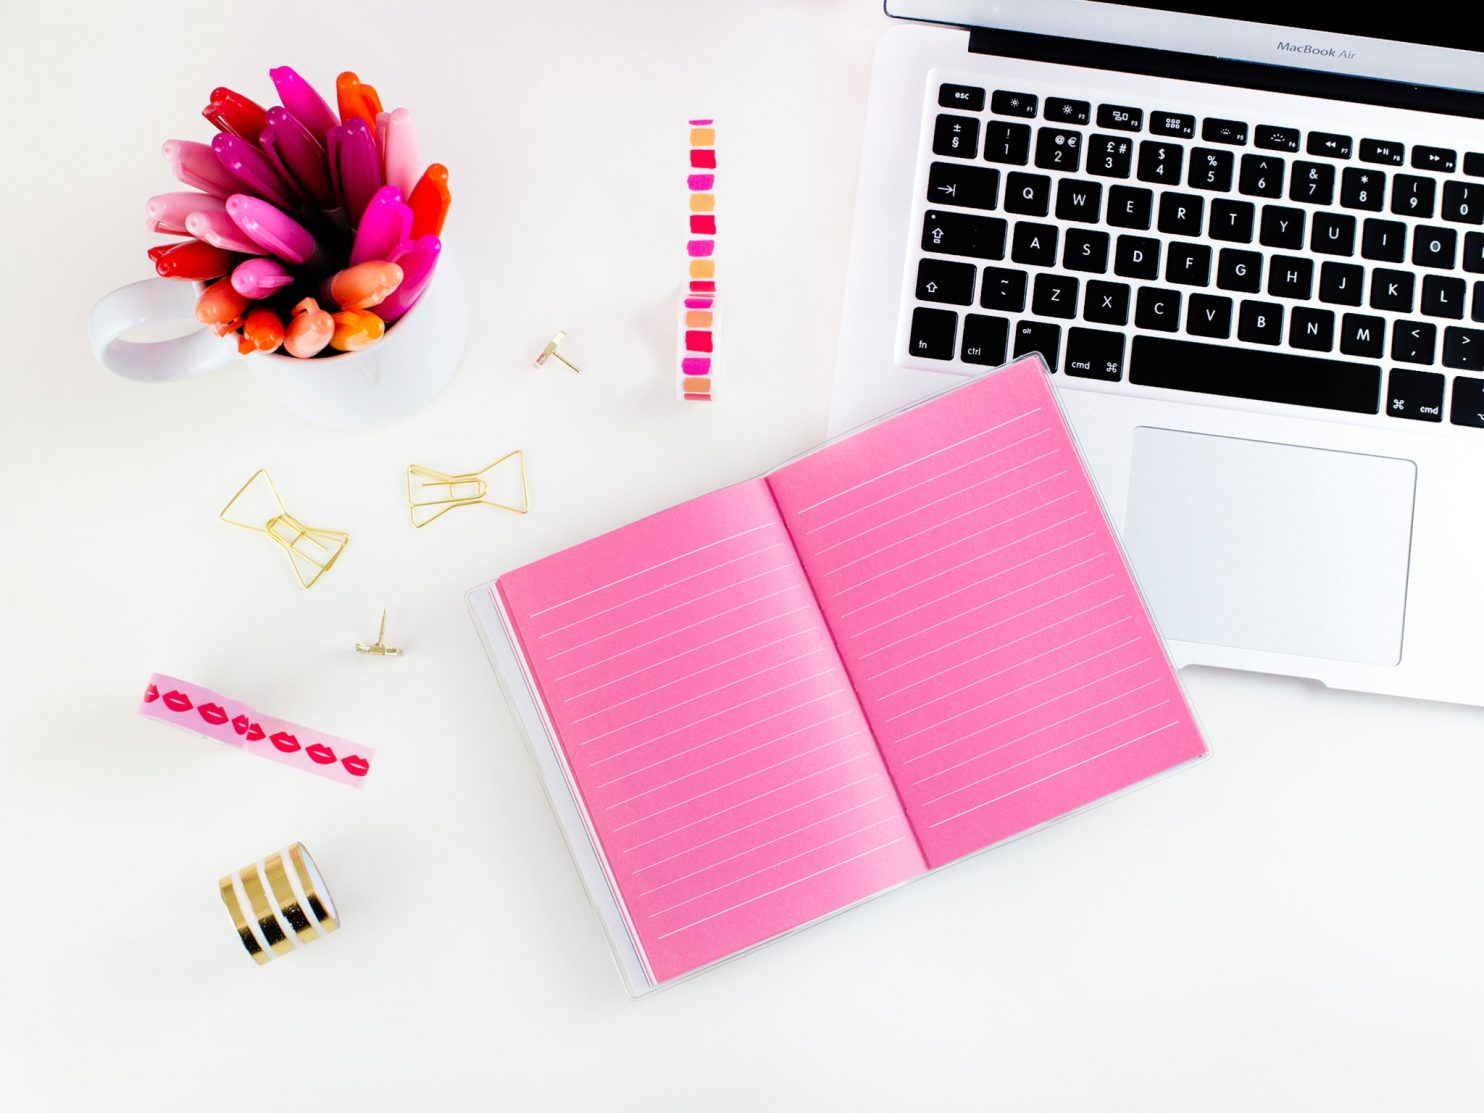 An open notebook with bright pink pages that's placed on top of a white laptop and next to a pot of pink pens